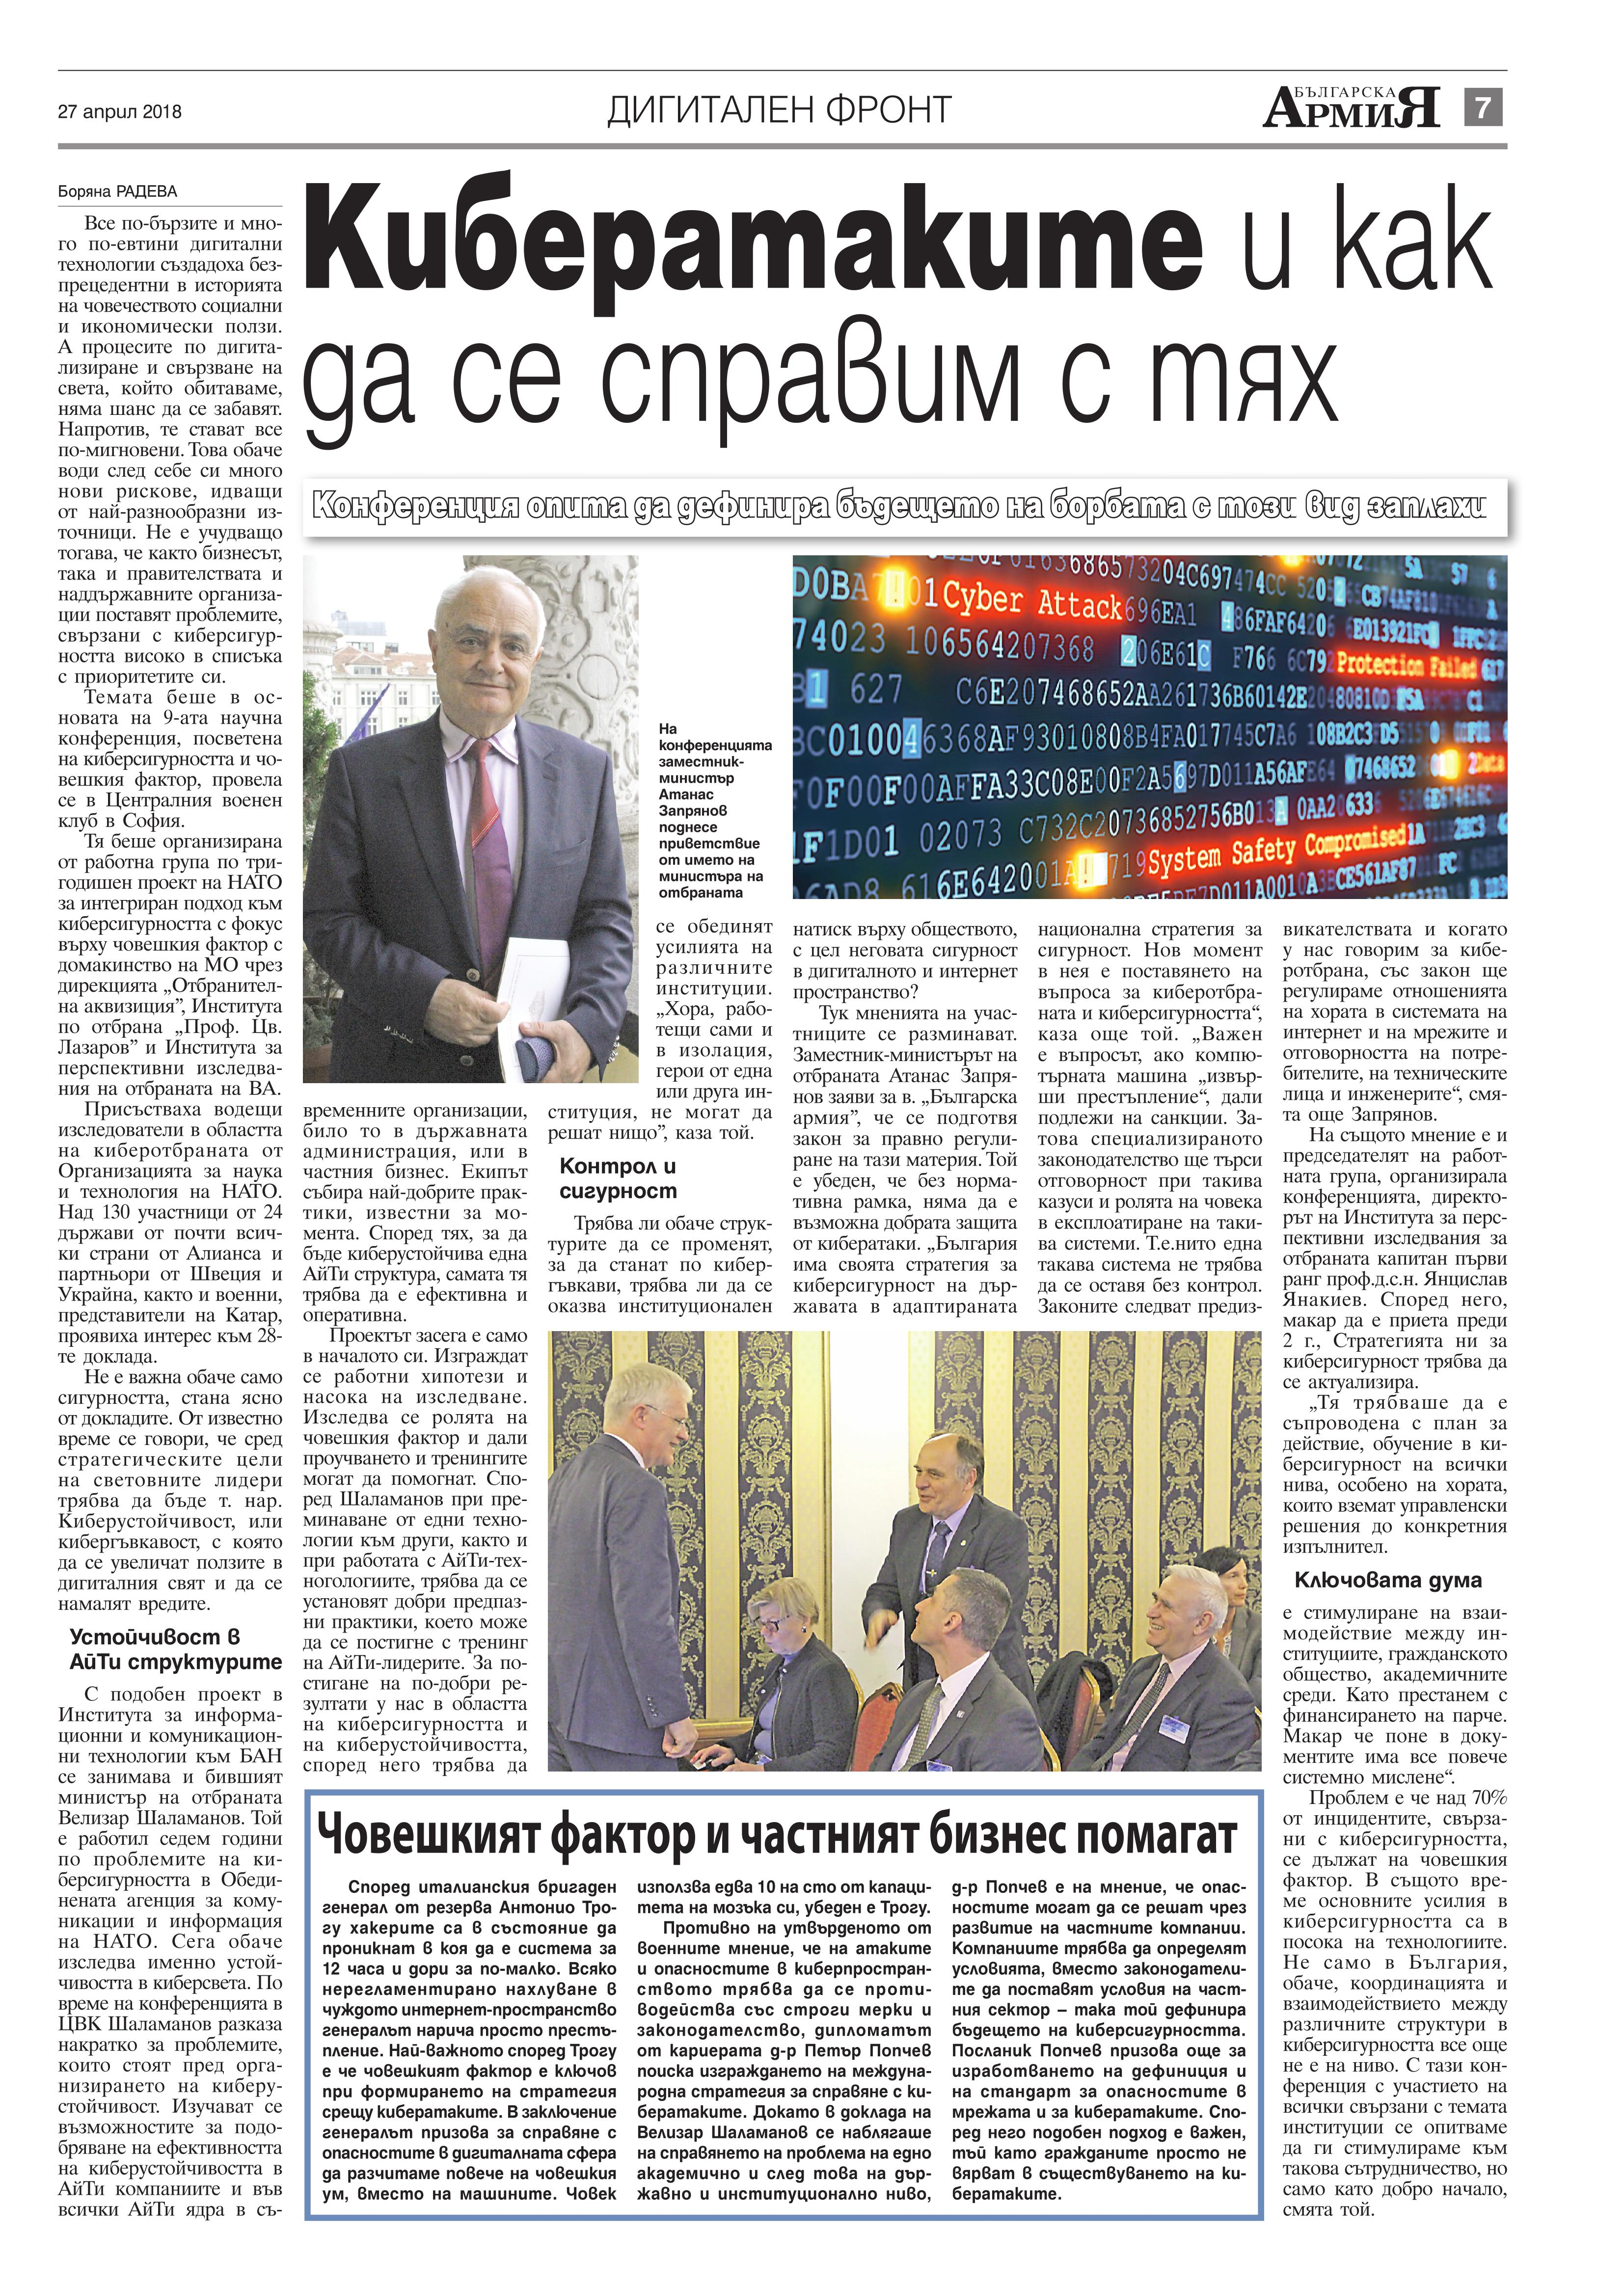 https://armymedia.bg/wp-content/uploads/2015/06/07.page1-Copy-2.jpg